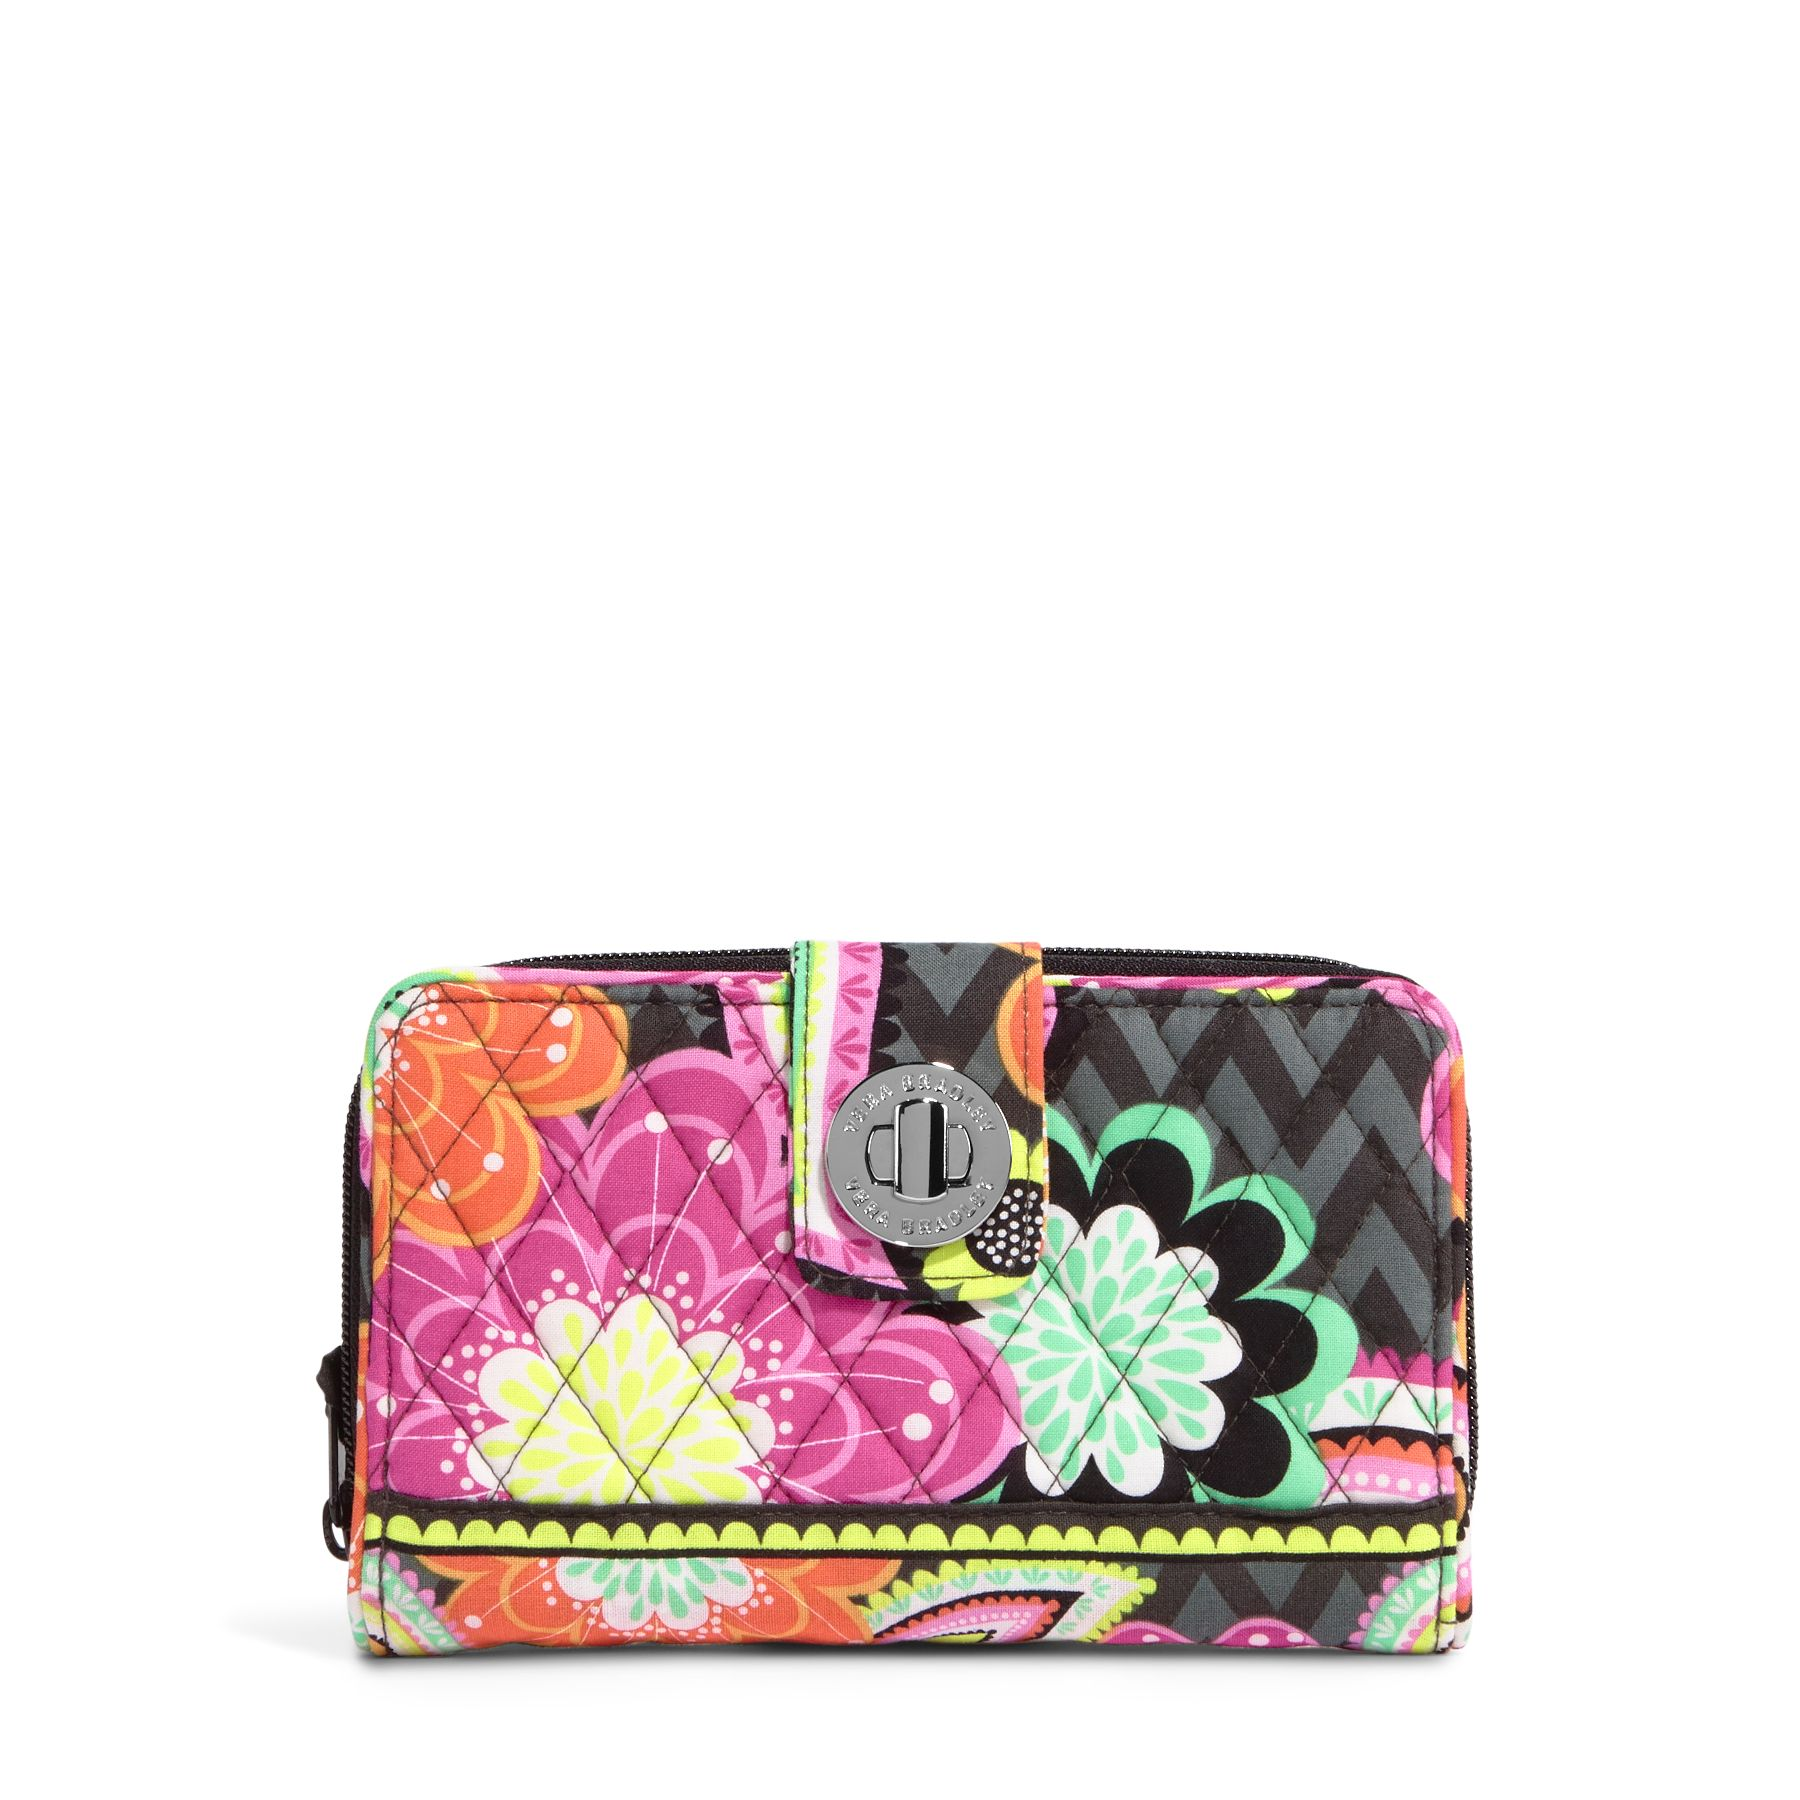 Vera Bradley Turn Lock Wallet in Ziggy Zinnia